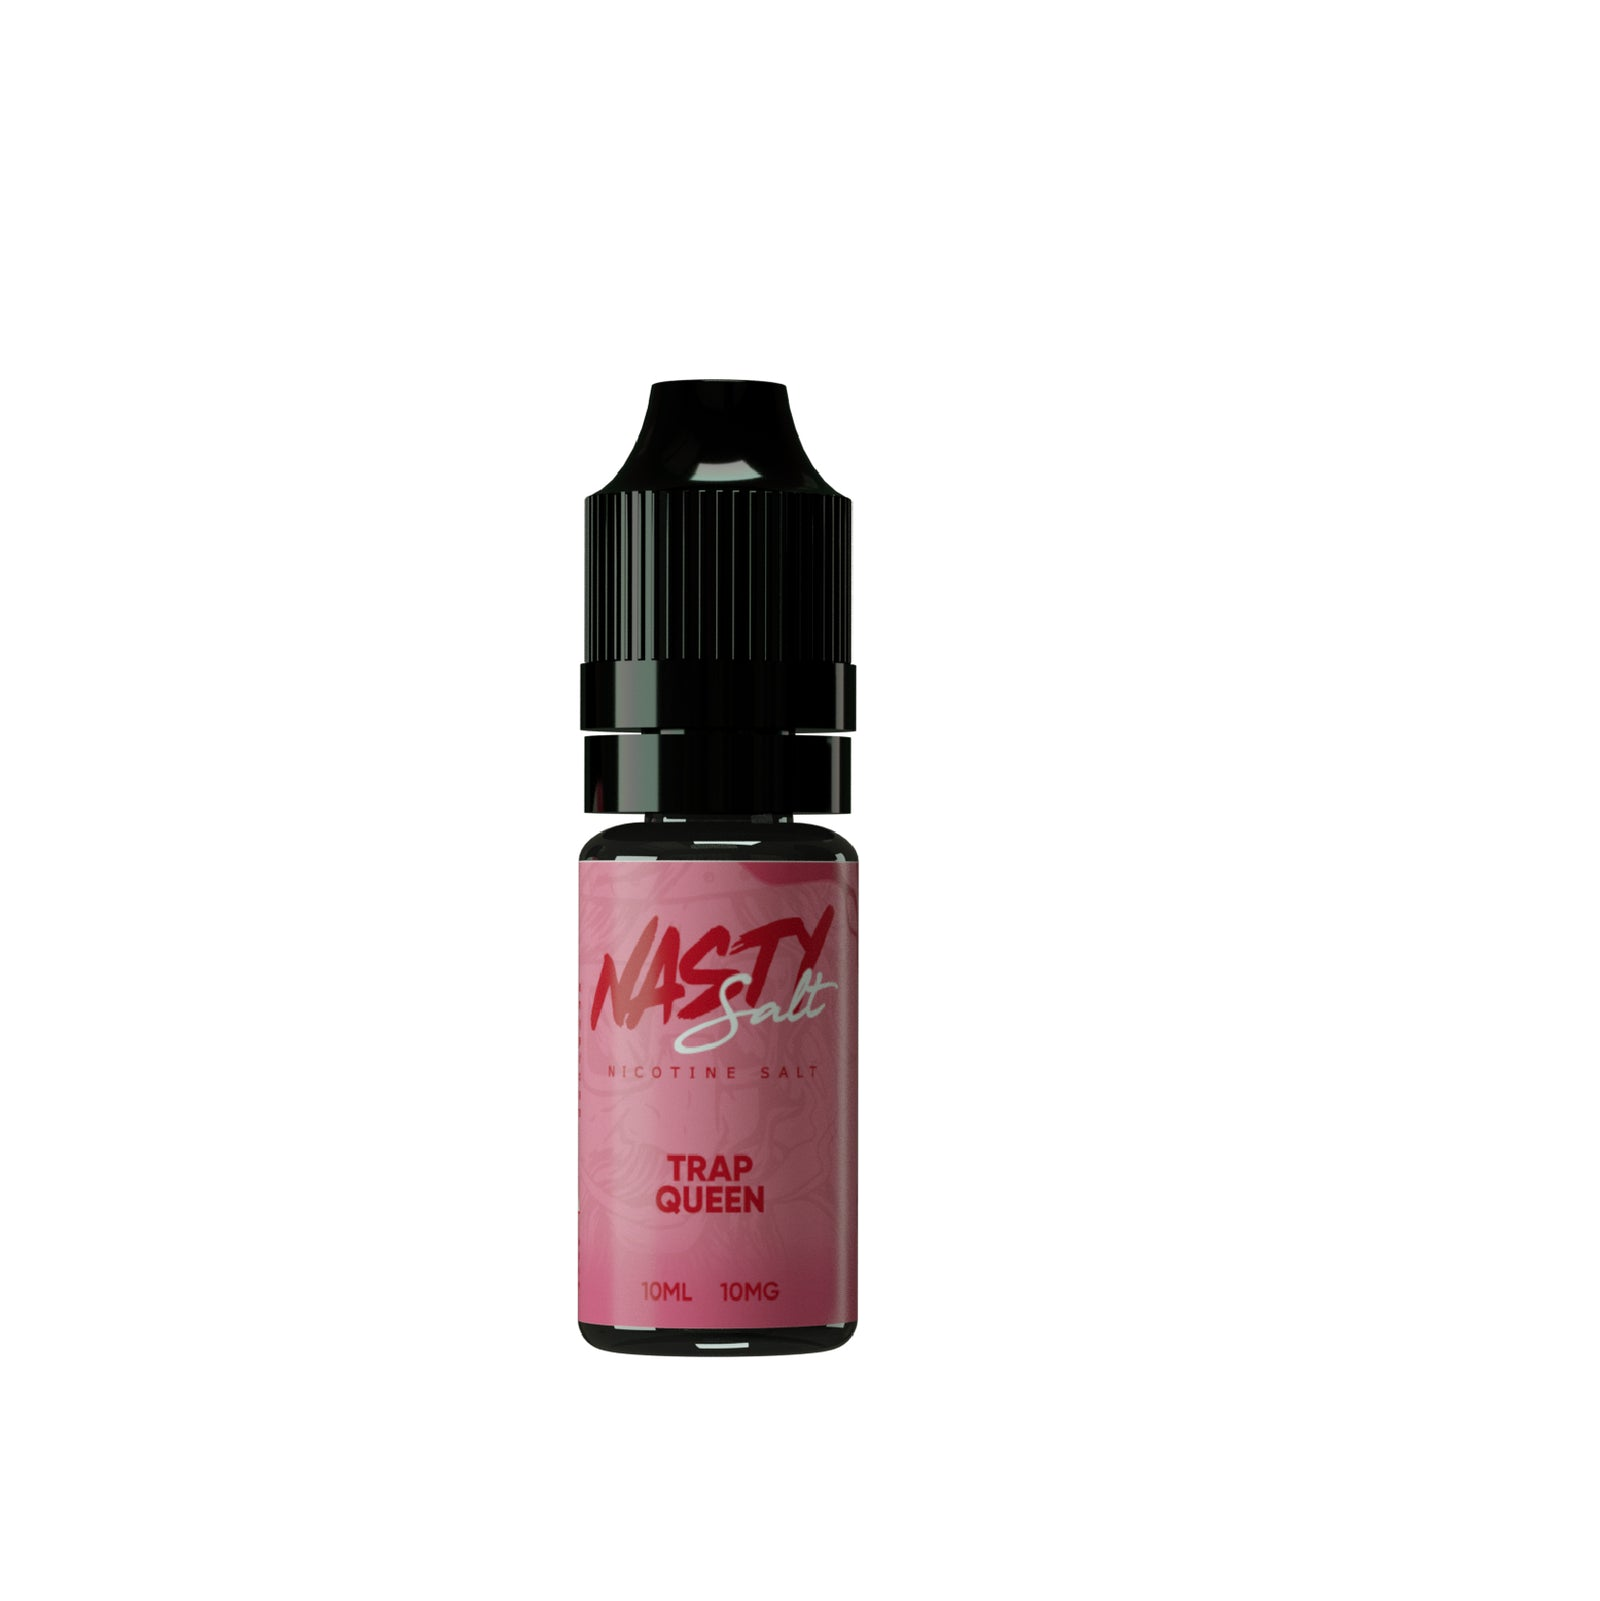 Nasty Salt 10ML